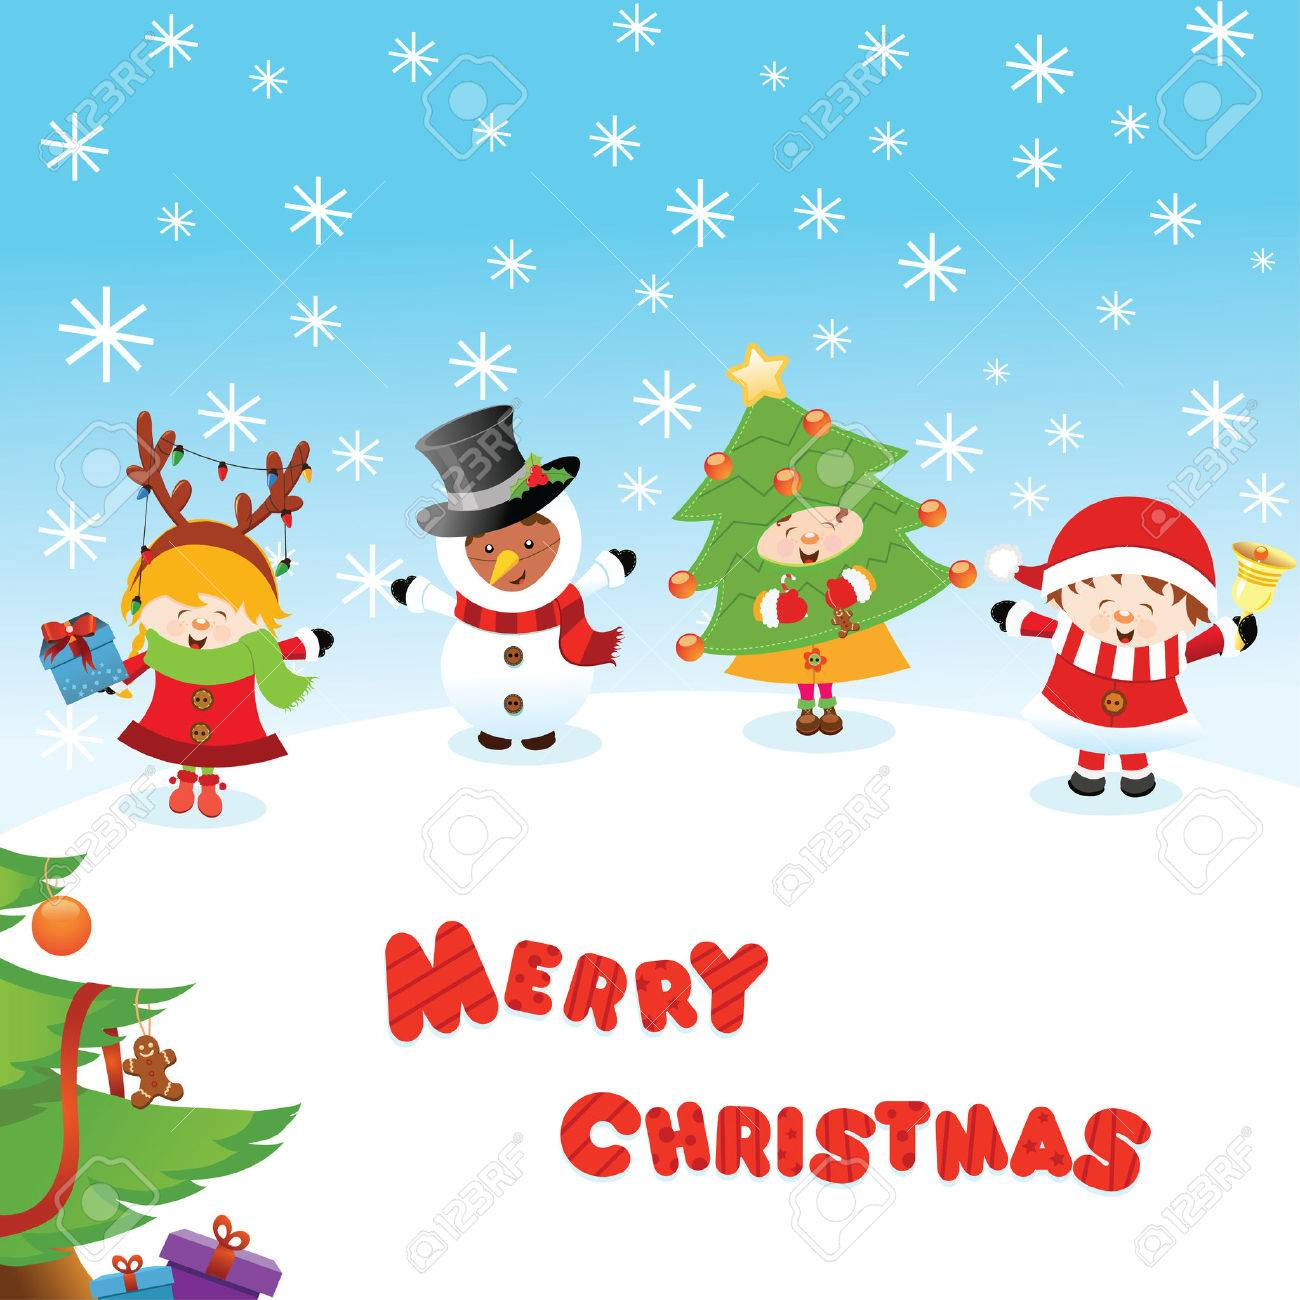 Costumed Kids Christmas Message Royalty Free Cliparts, Vectors, And ...